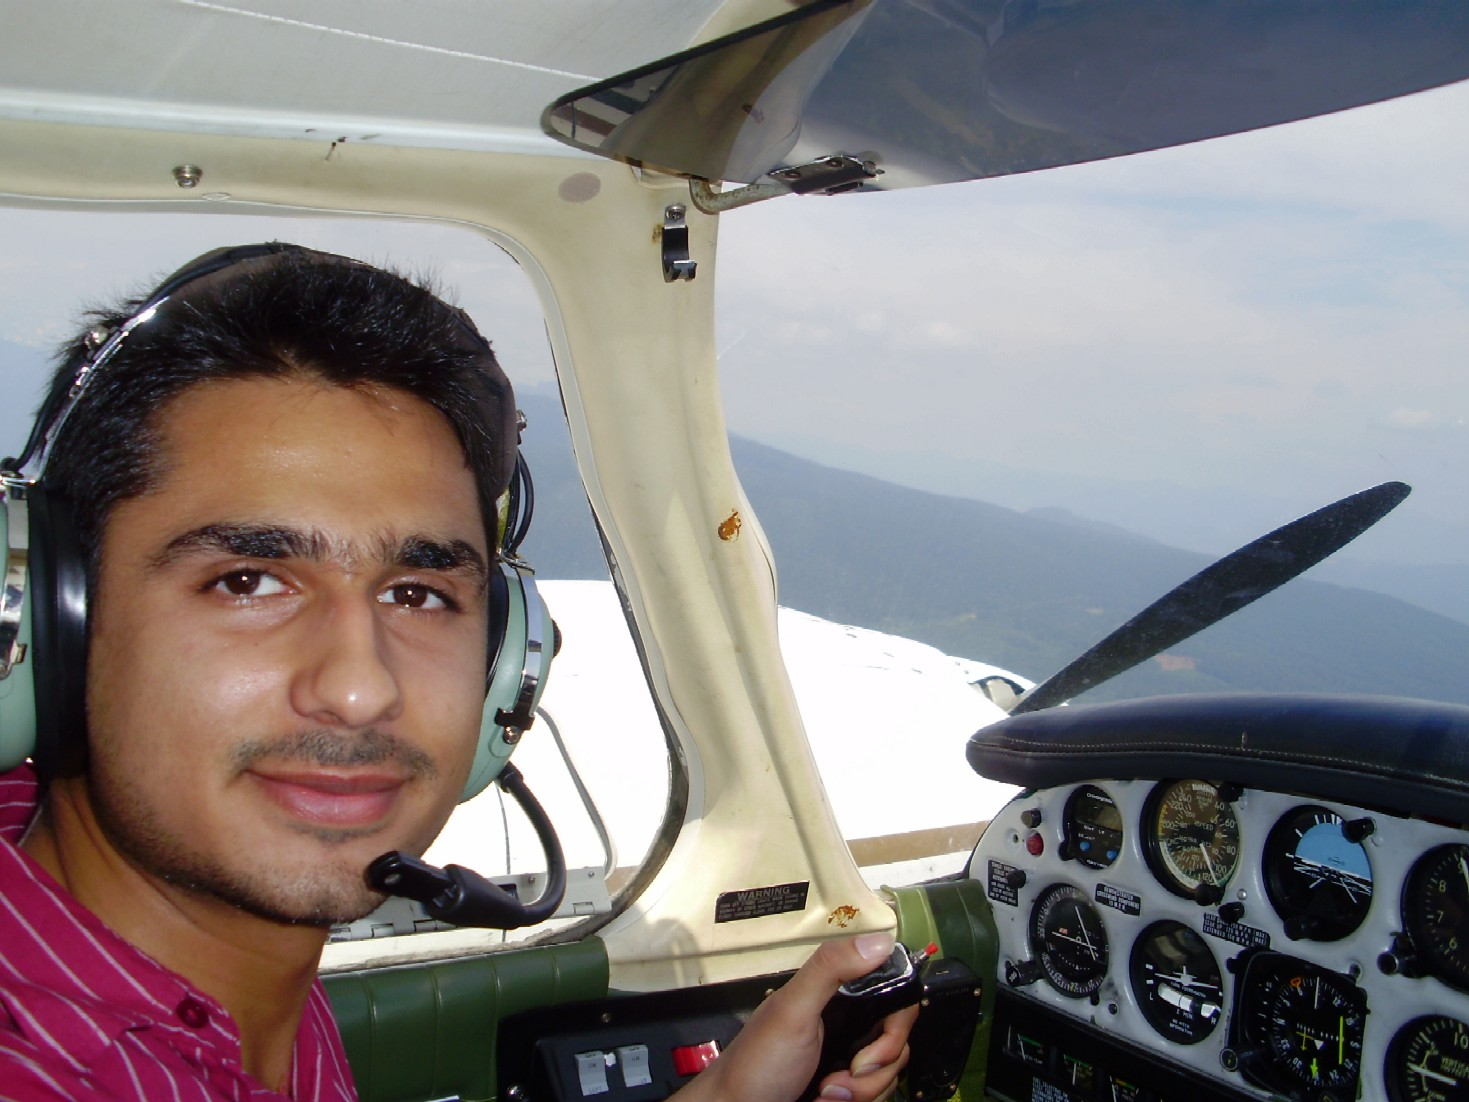 Karan Pujji during his multi-engine training. Congratulations to Karan and his Flight Instructor, Philip Craig.  Karan completed his Multi-engine fFlight Test on July 1, 2009 with Matt Edwards. Langley Flying School.